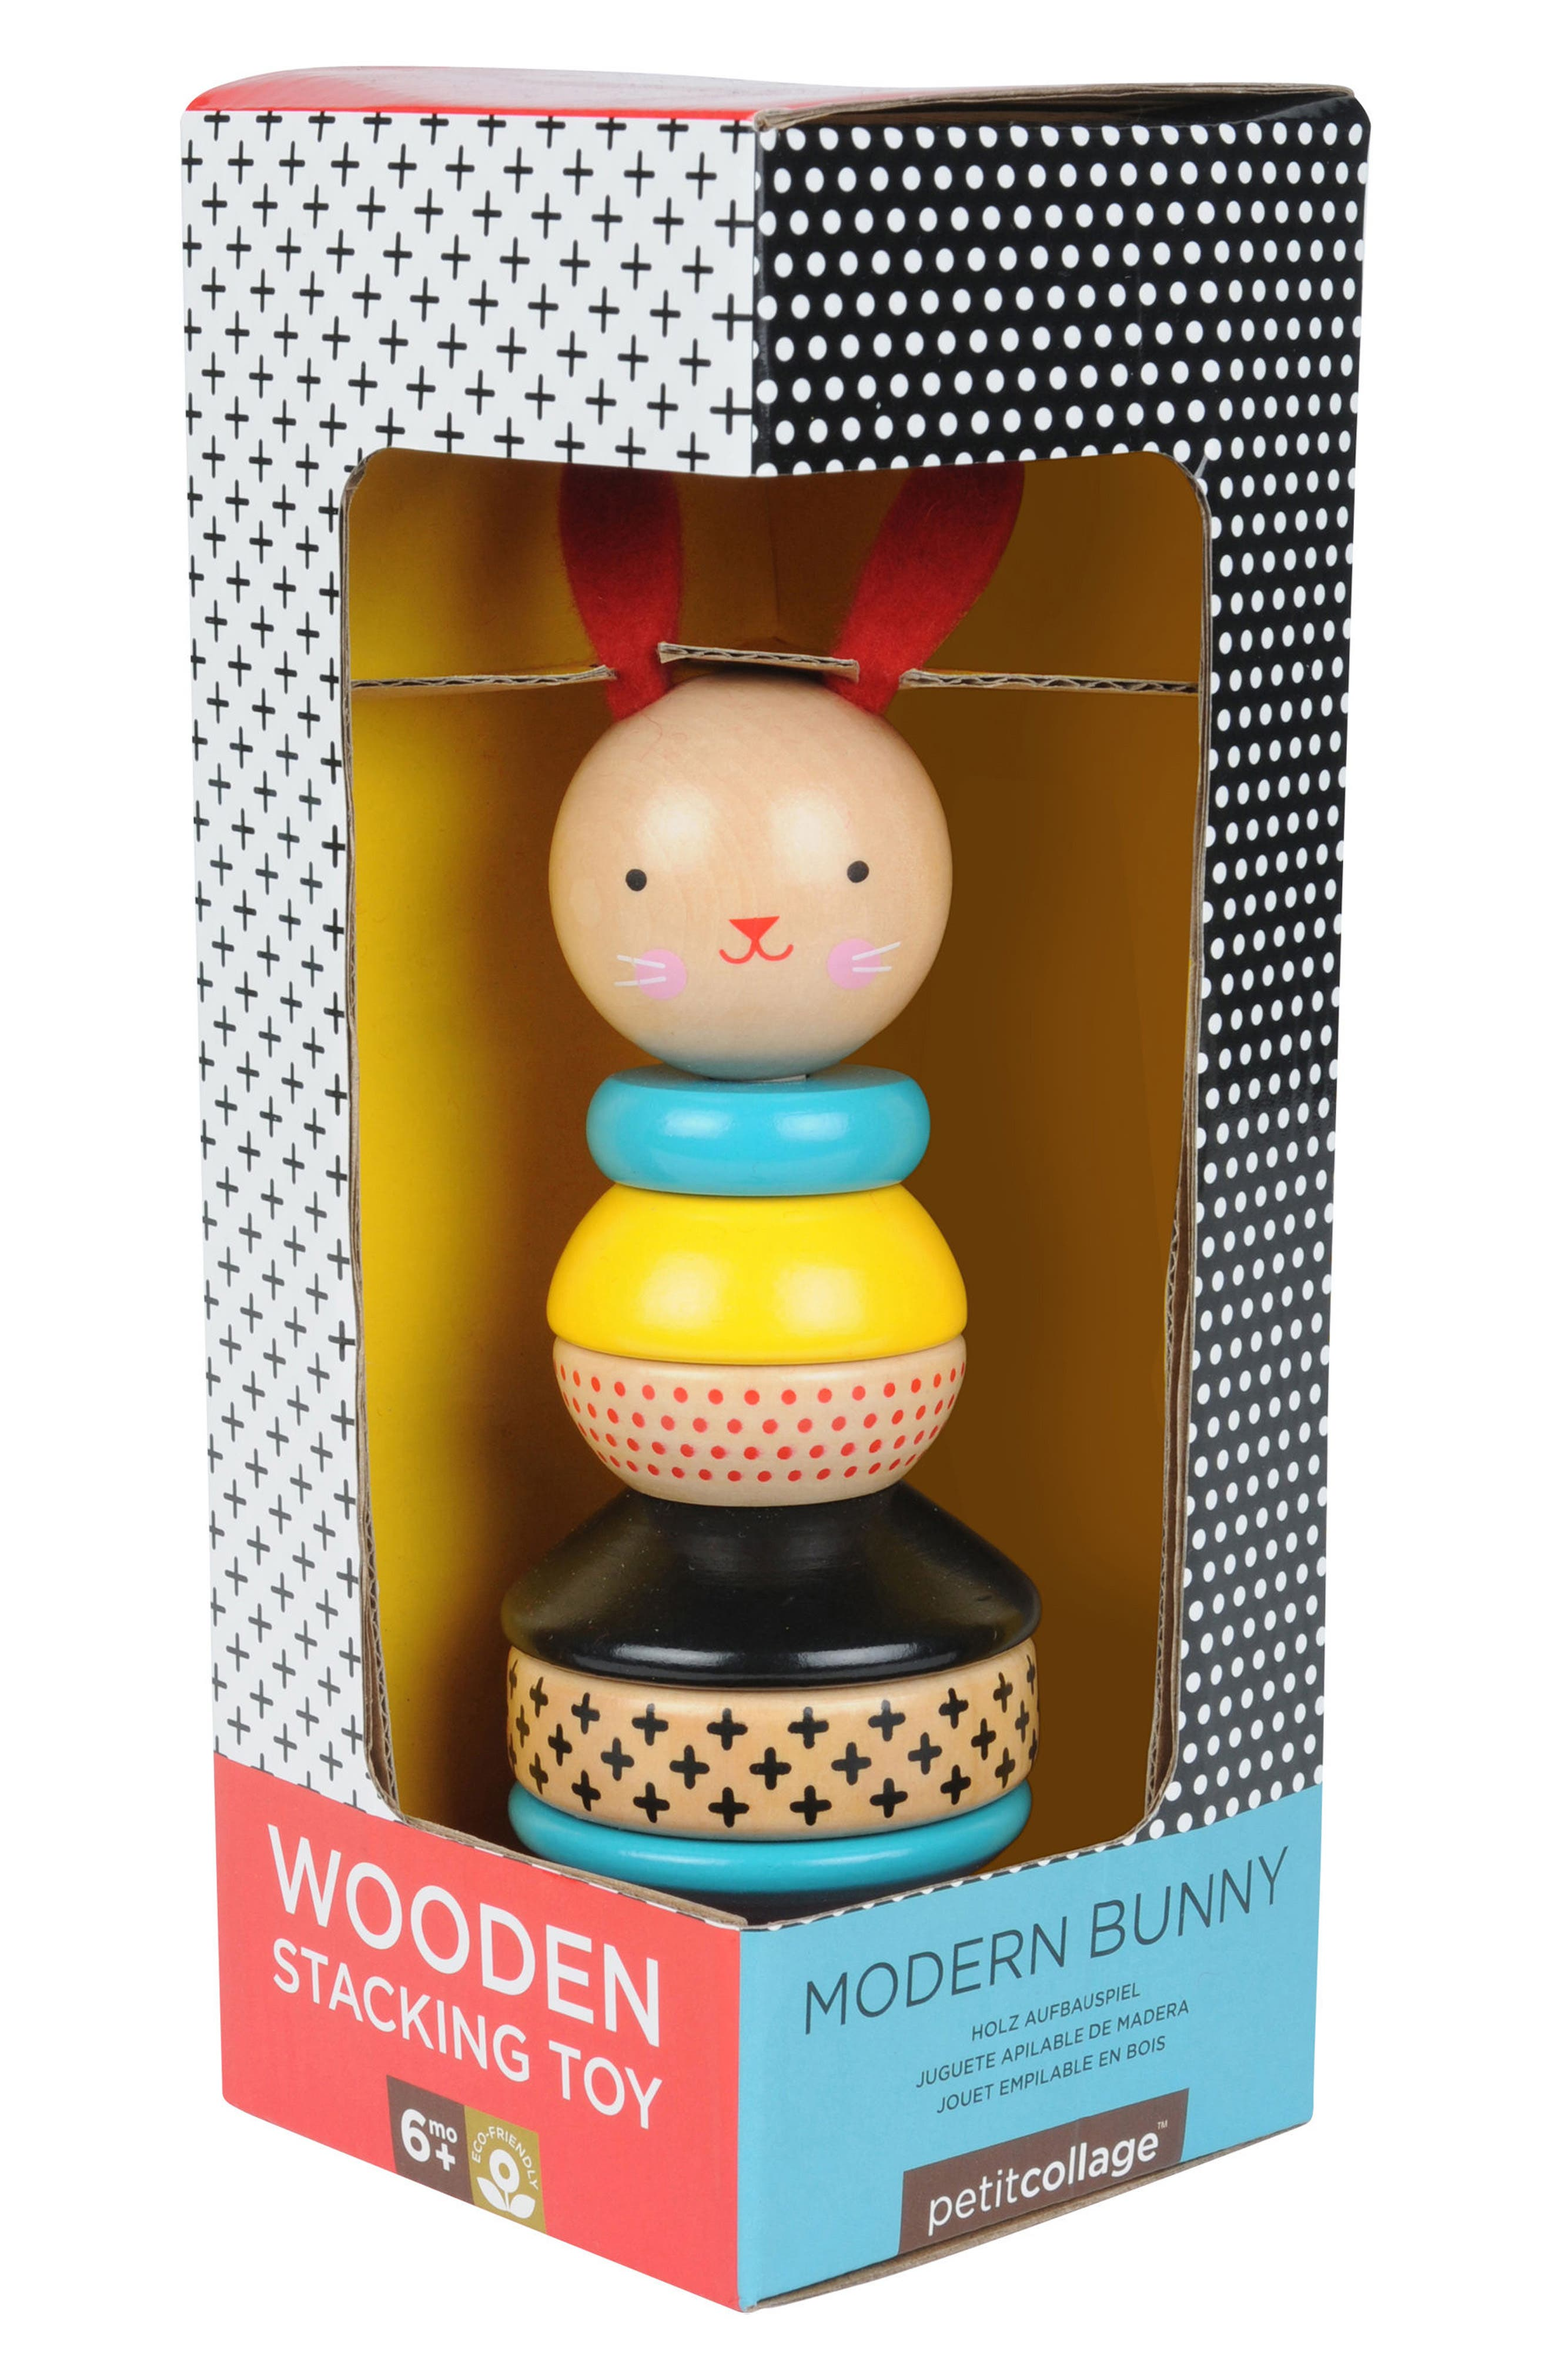 Petit Collage 8-Piece Modern Bunny Wooden Stacking Toy